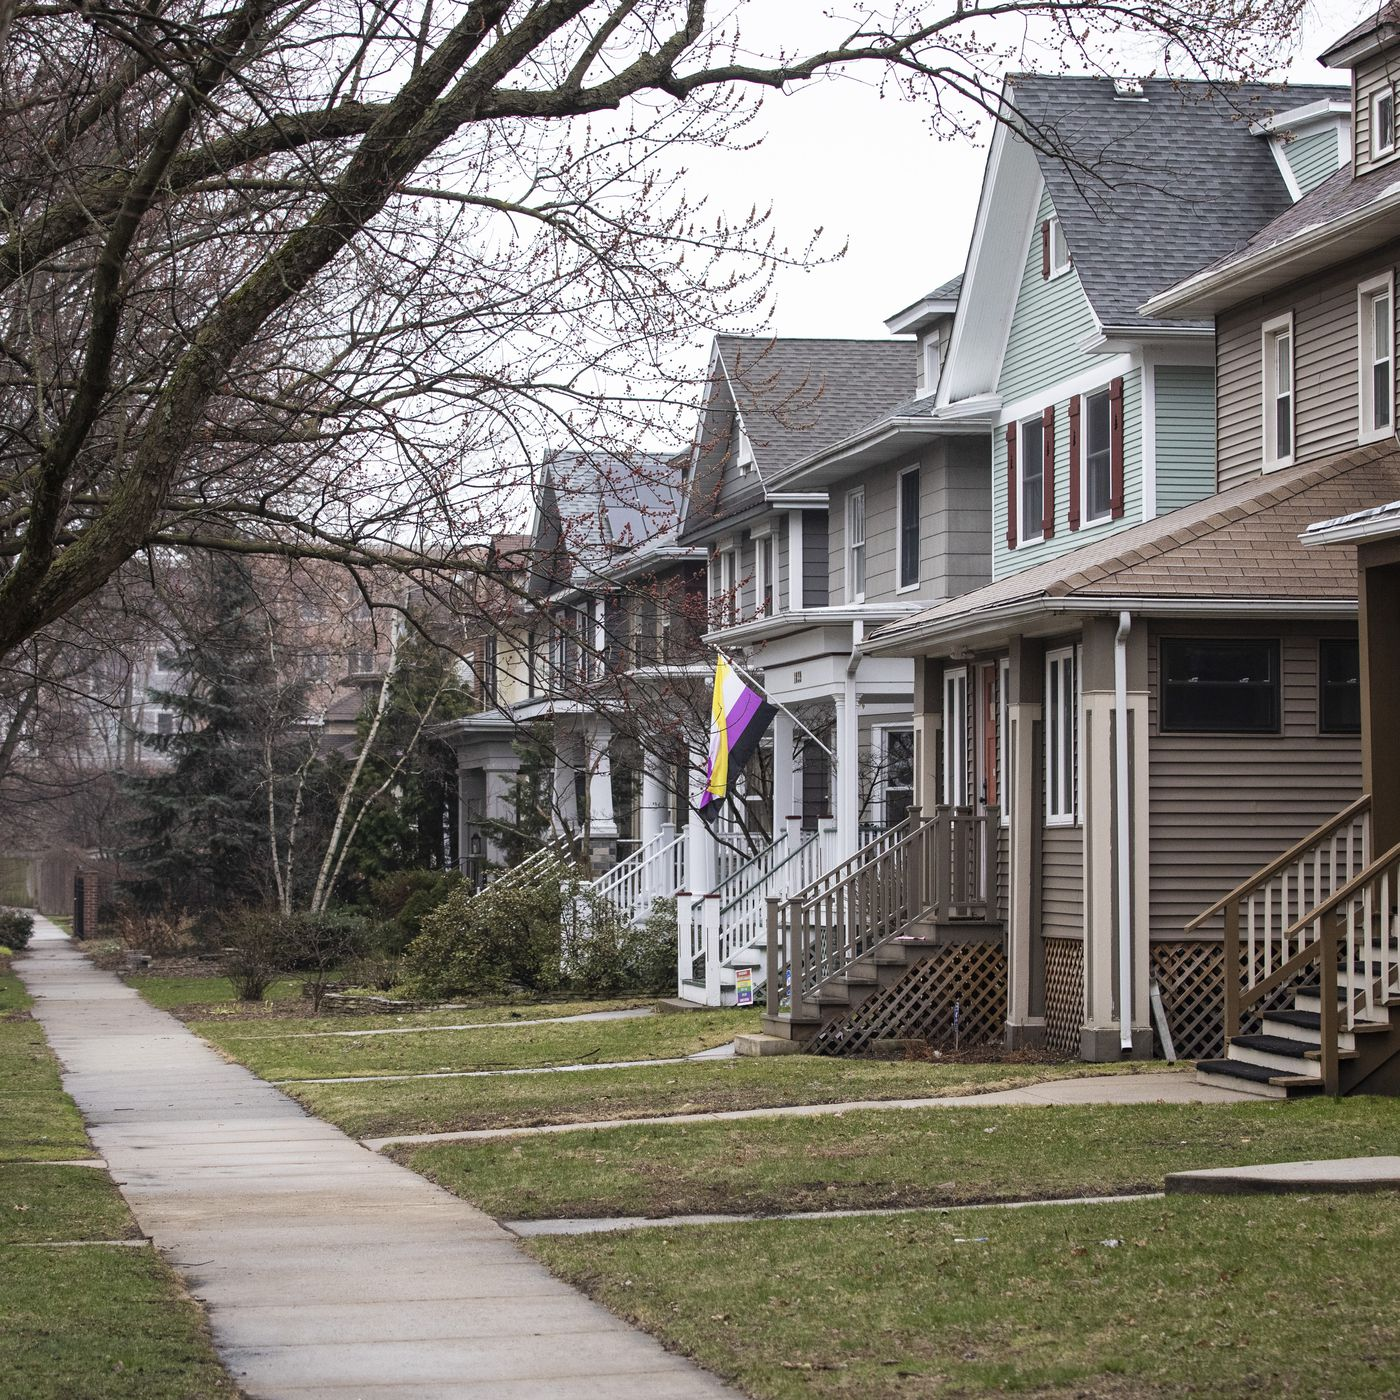 I want to save a historic Chicago home. I'm up against developers who would rather raze it